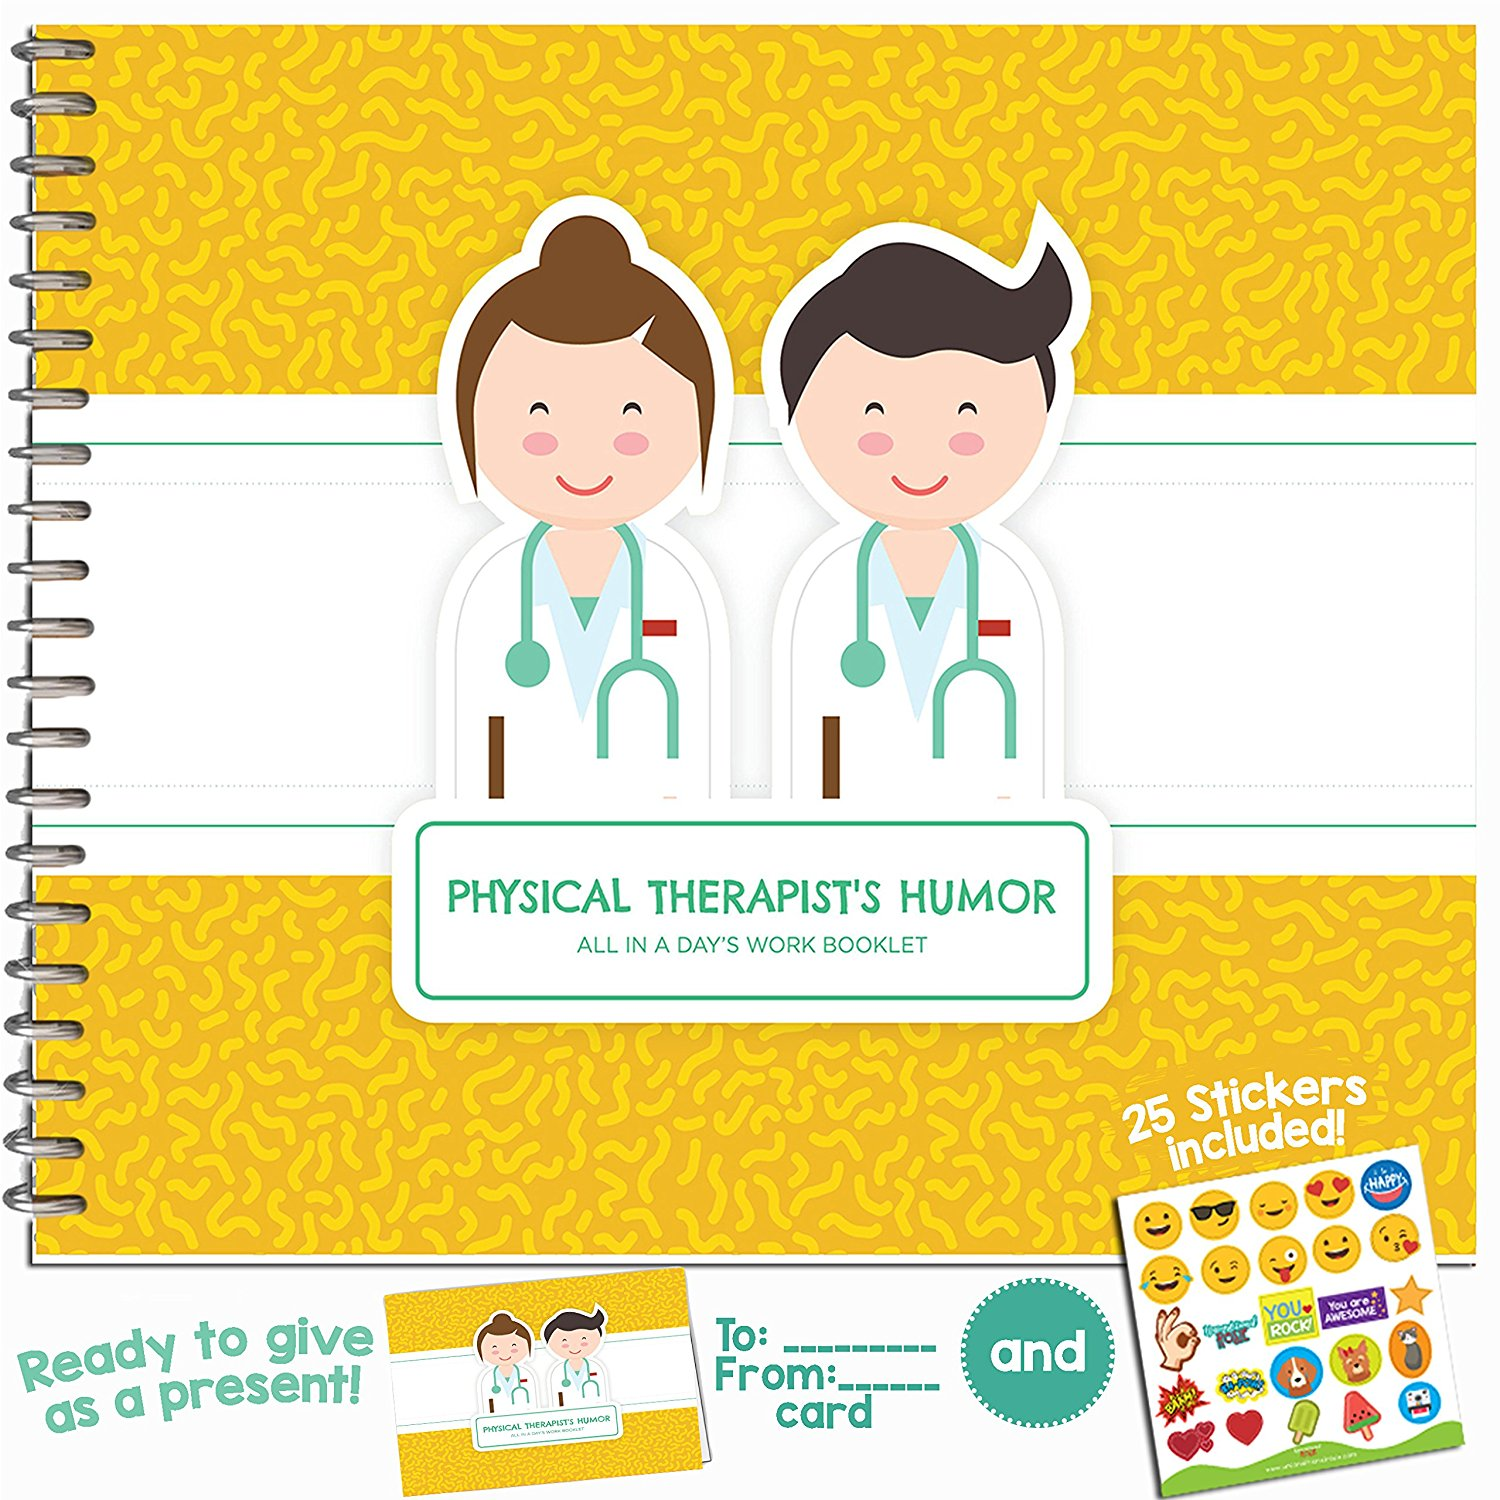 PHYSICAL THERAPIST GIFTS - Personalizable Humor Booklet With Card For Your Favorite Physiotherapist Chiropractor  sc 1 st  Alibaba.com & Buy PHYSICAL THERAPIST GIFTS - Personalizable Humor Booklet With ...